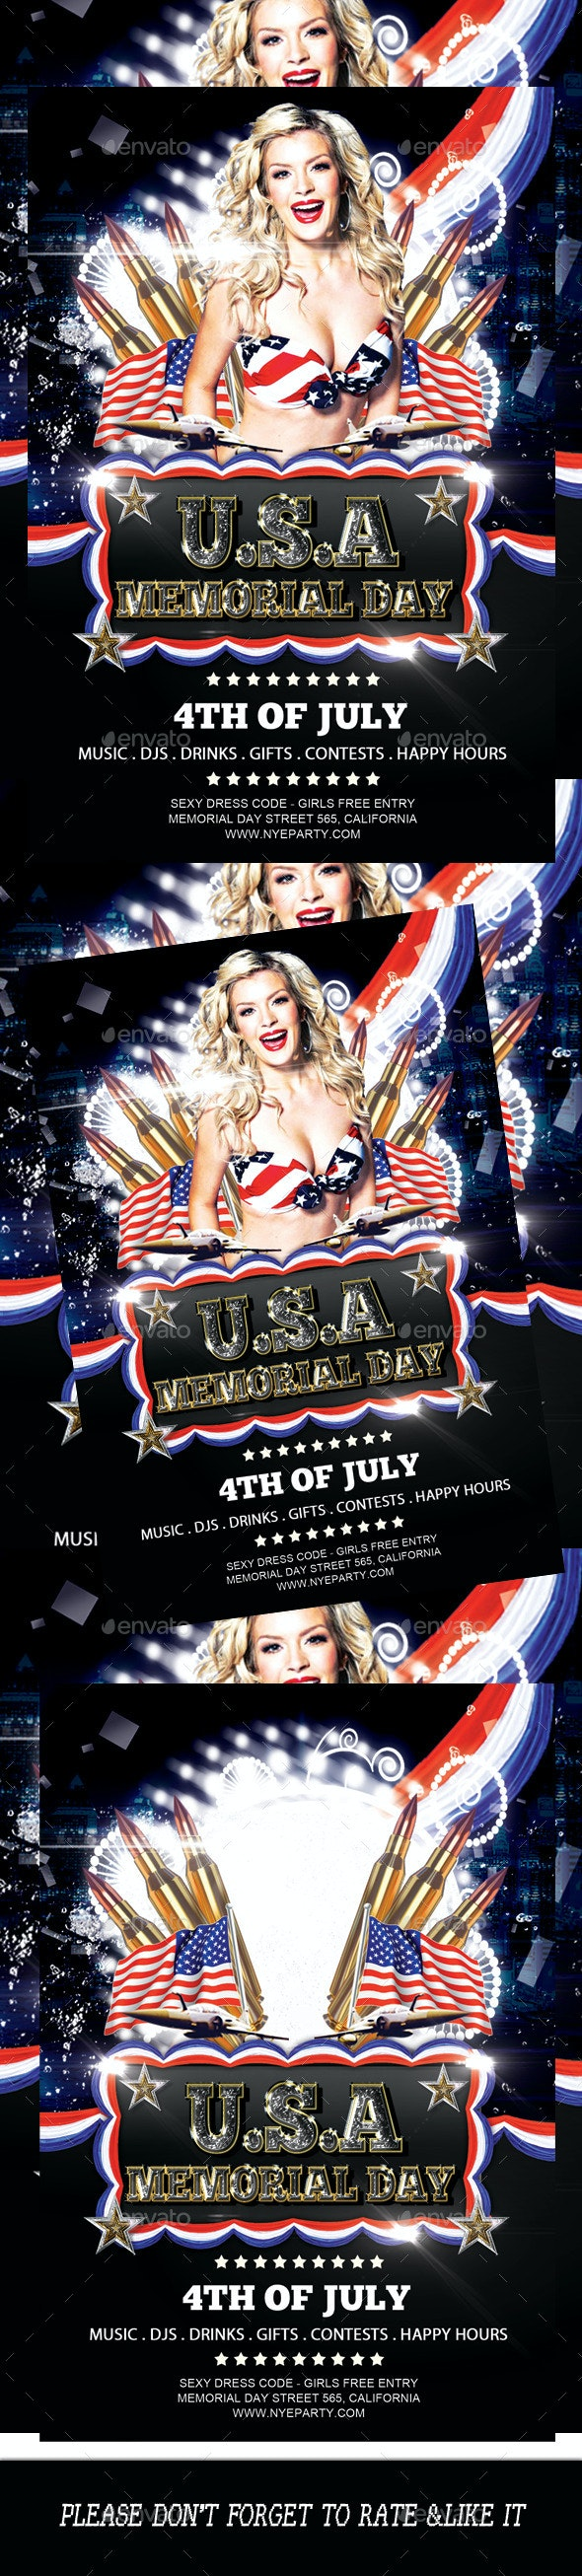 4th Of July Flyer Template 2 - Events Flyers